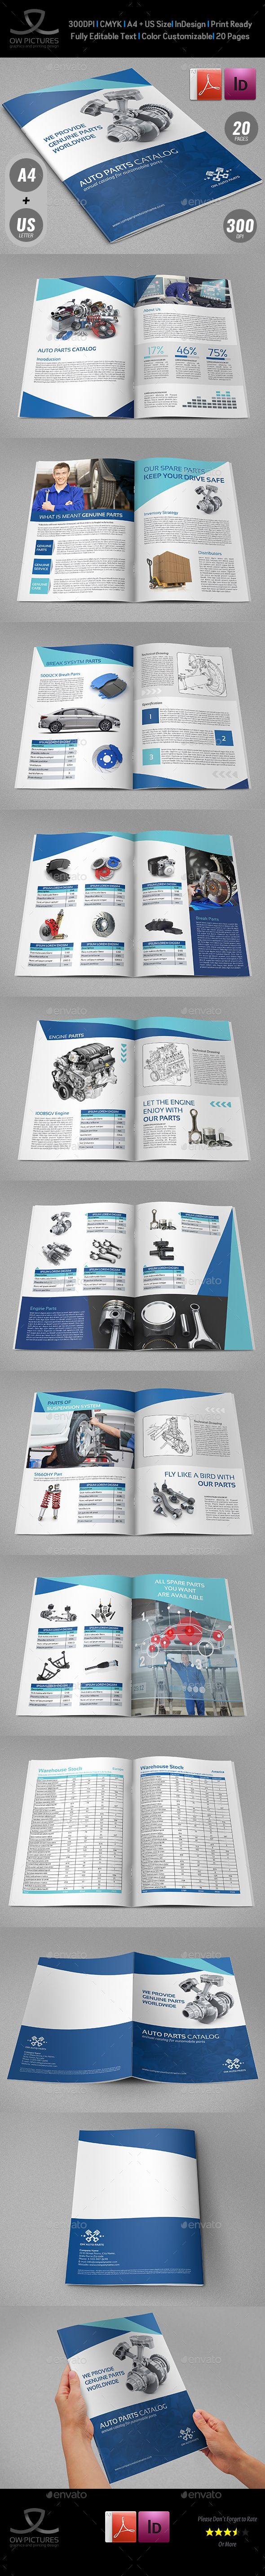 Auto Parts Catalog Brochure Template  20 Pages — InDesign INDD #car #tools • Available here → https://graphicriver.net/item/auto-parts-catalog-brochure-template-20-pages/13183387?ref=pxcr